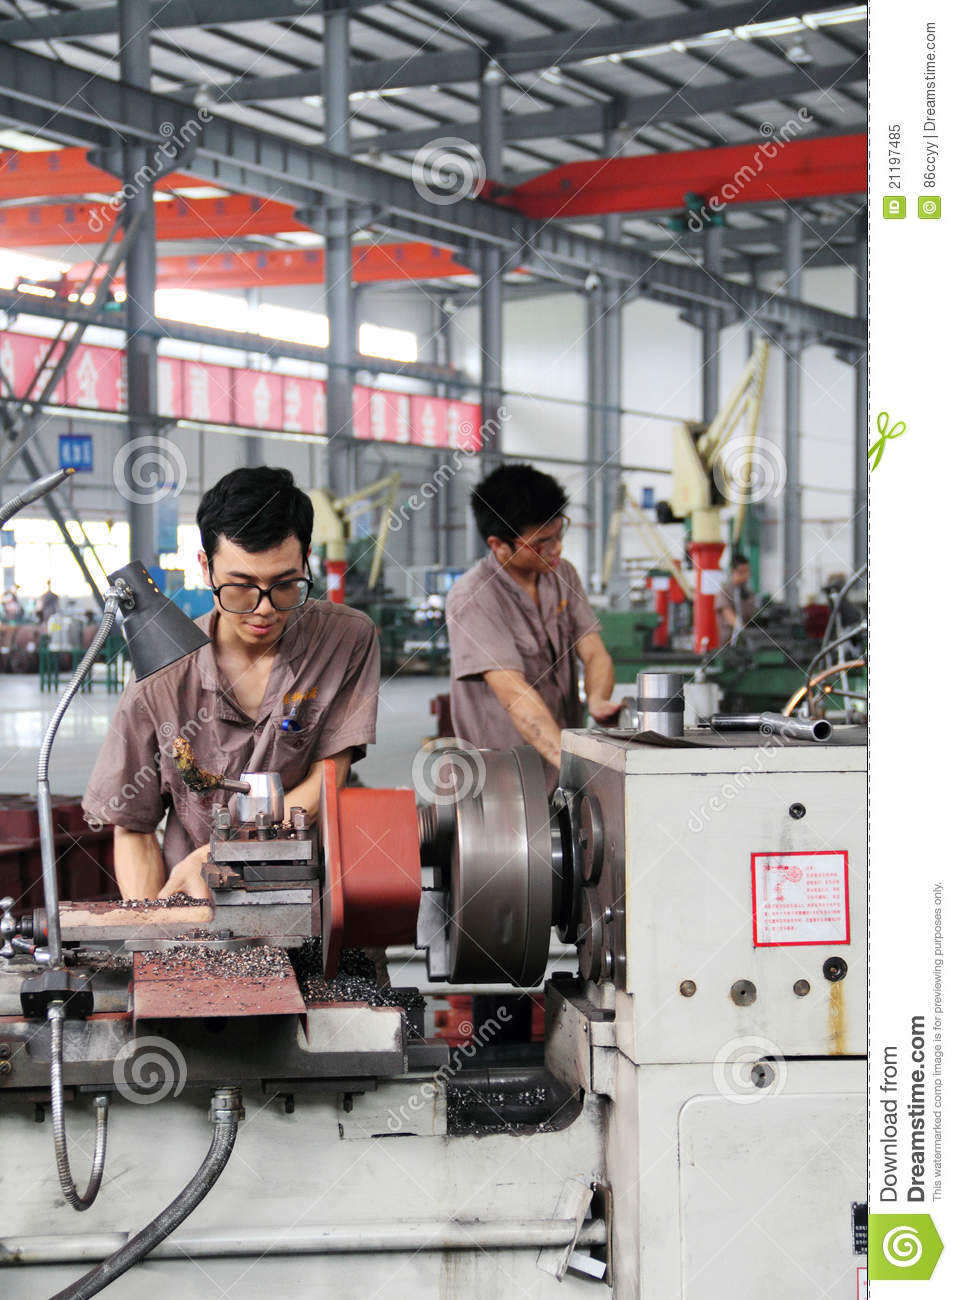 Man was working in factory